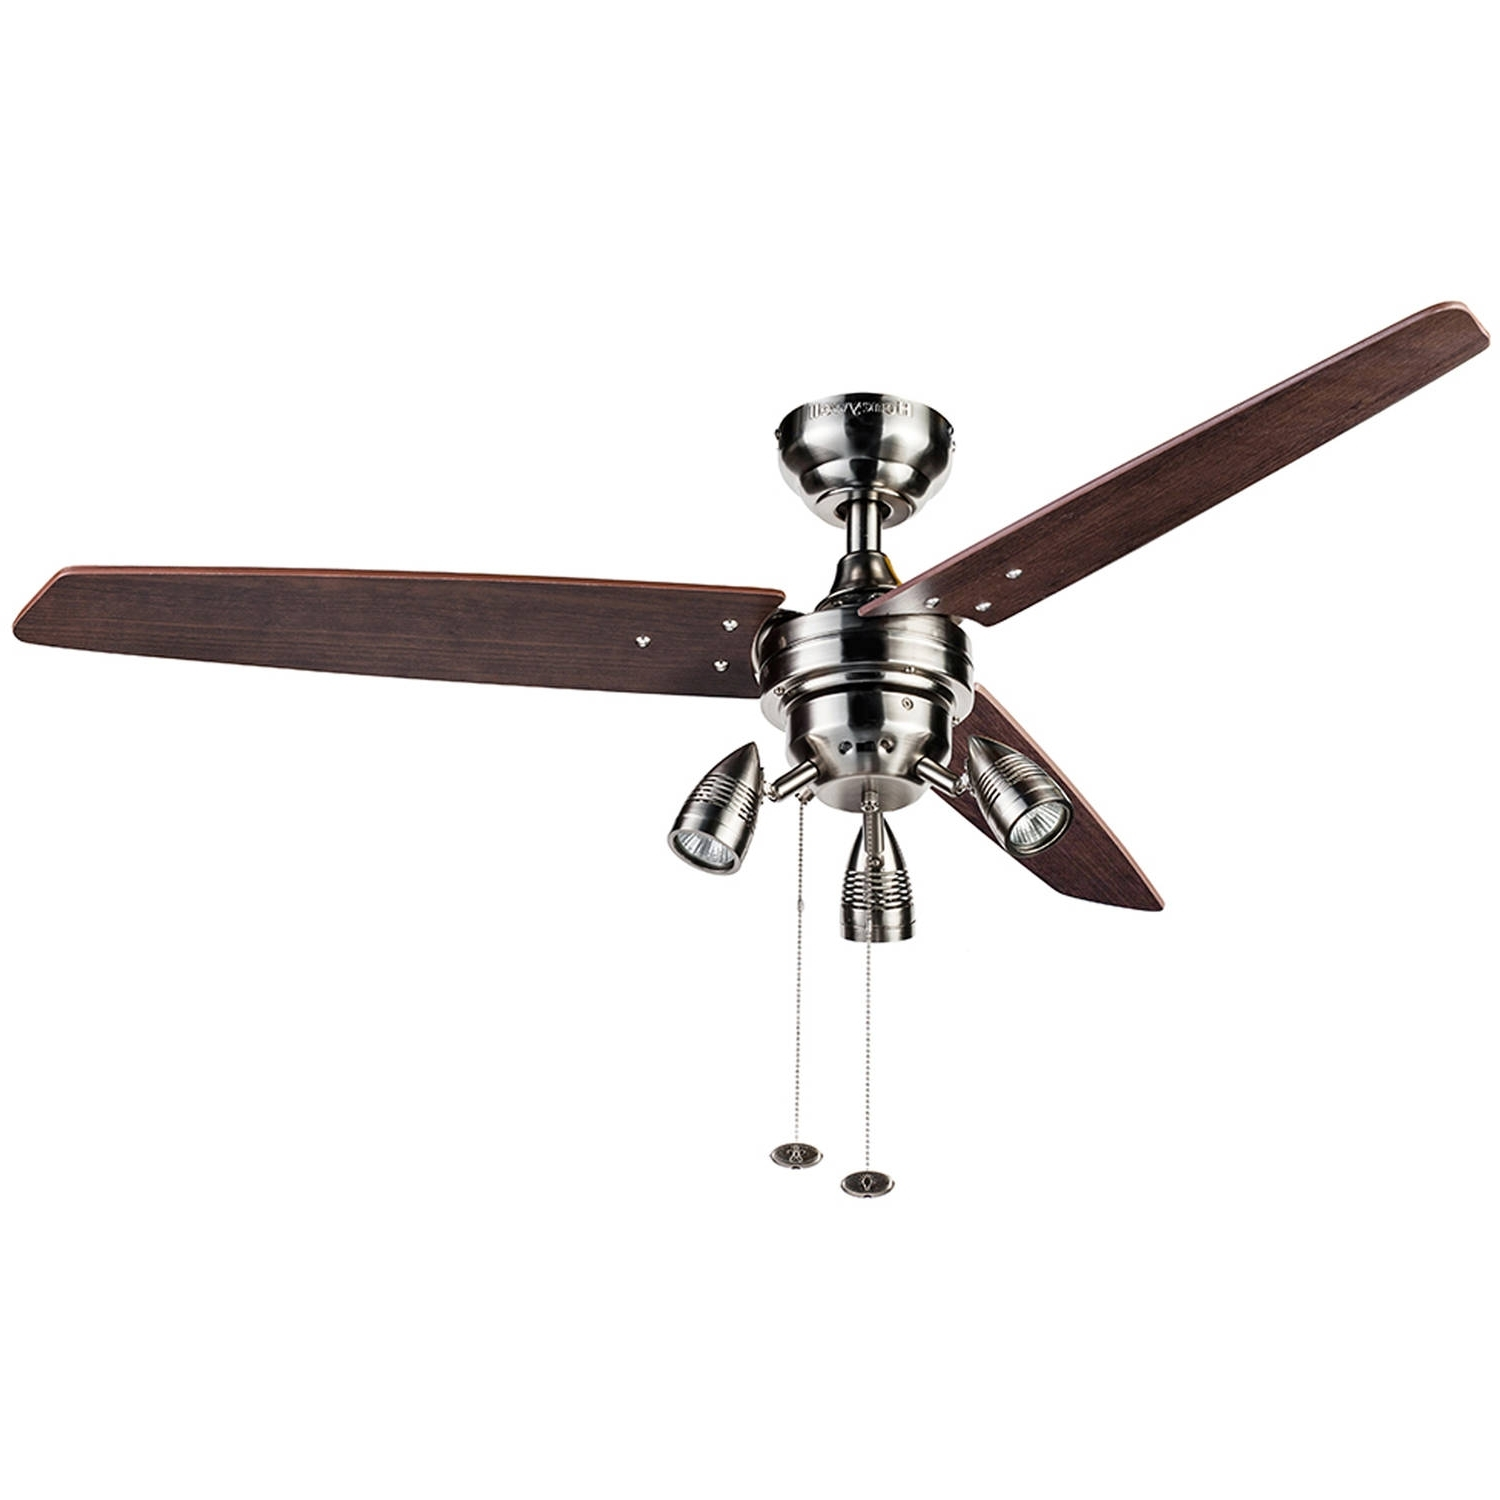 Kmart Outdoor Ceiling Fans Intended For Widely Used Ceiling Fan: Recomended Walmart Ceiling Fans For Home Kmart Ceiling (View 6 of 20)